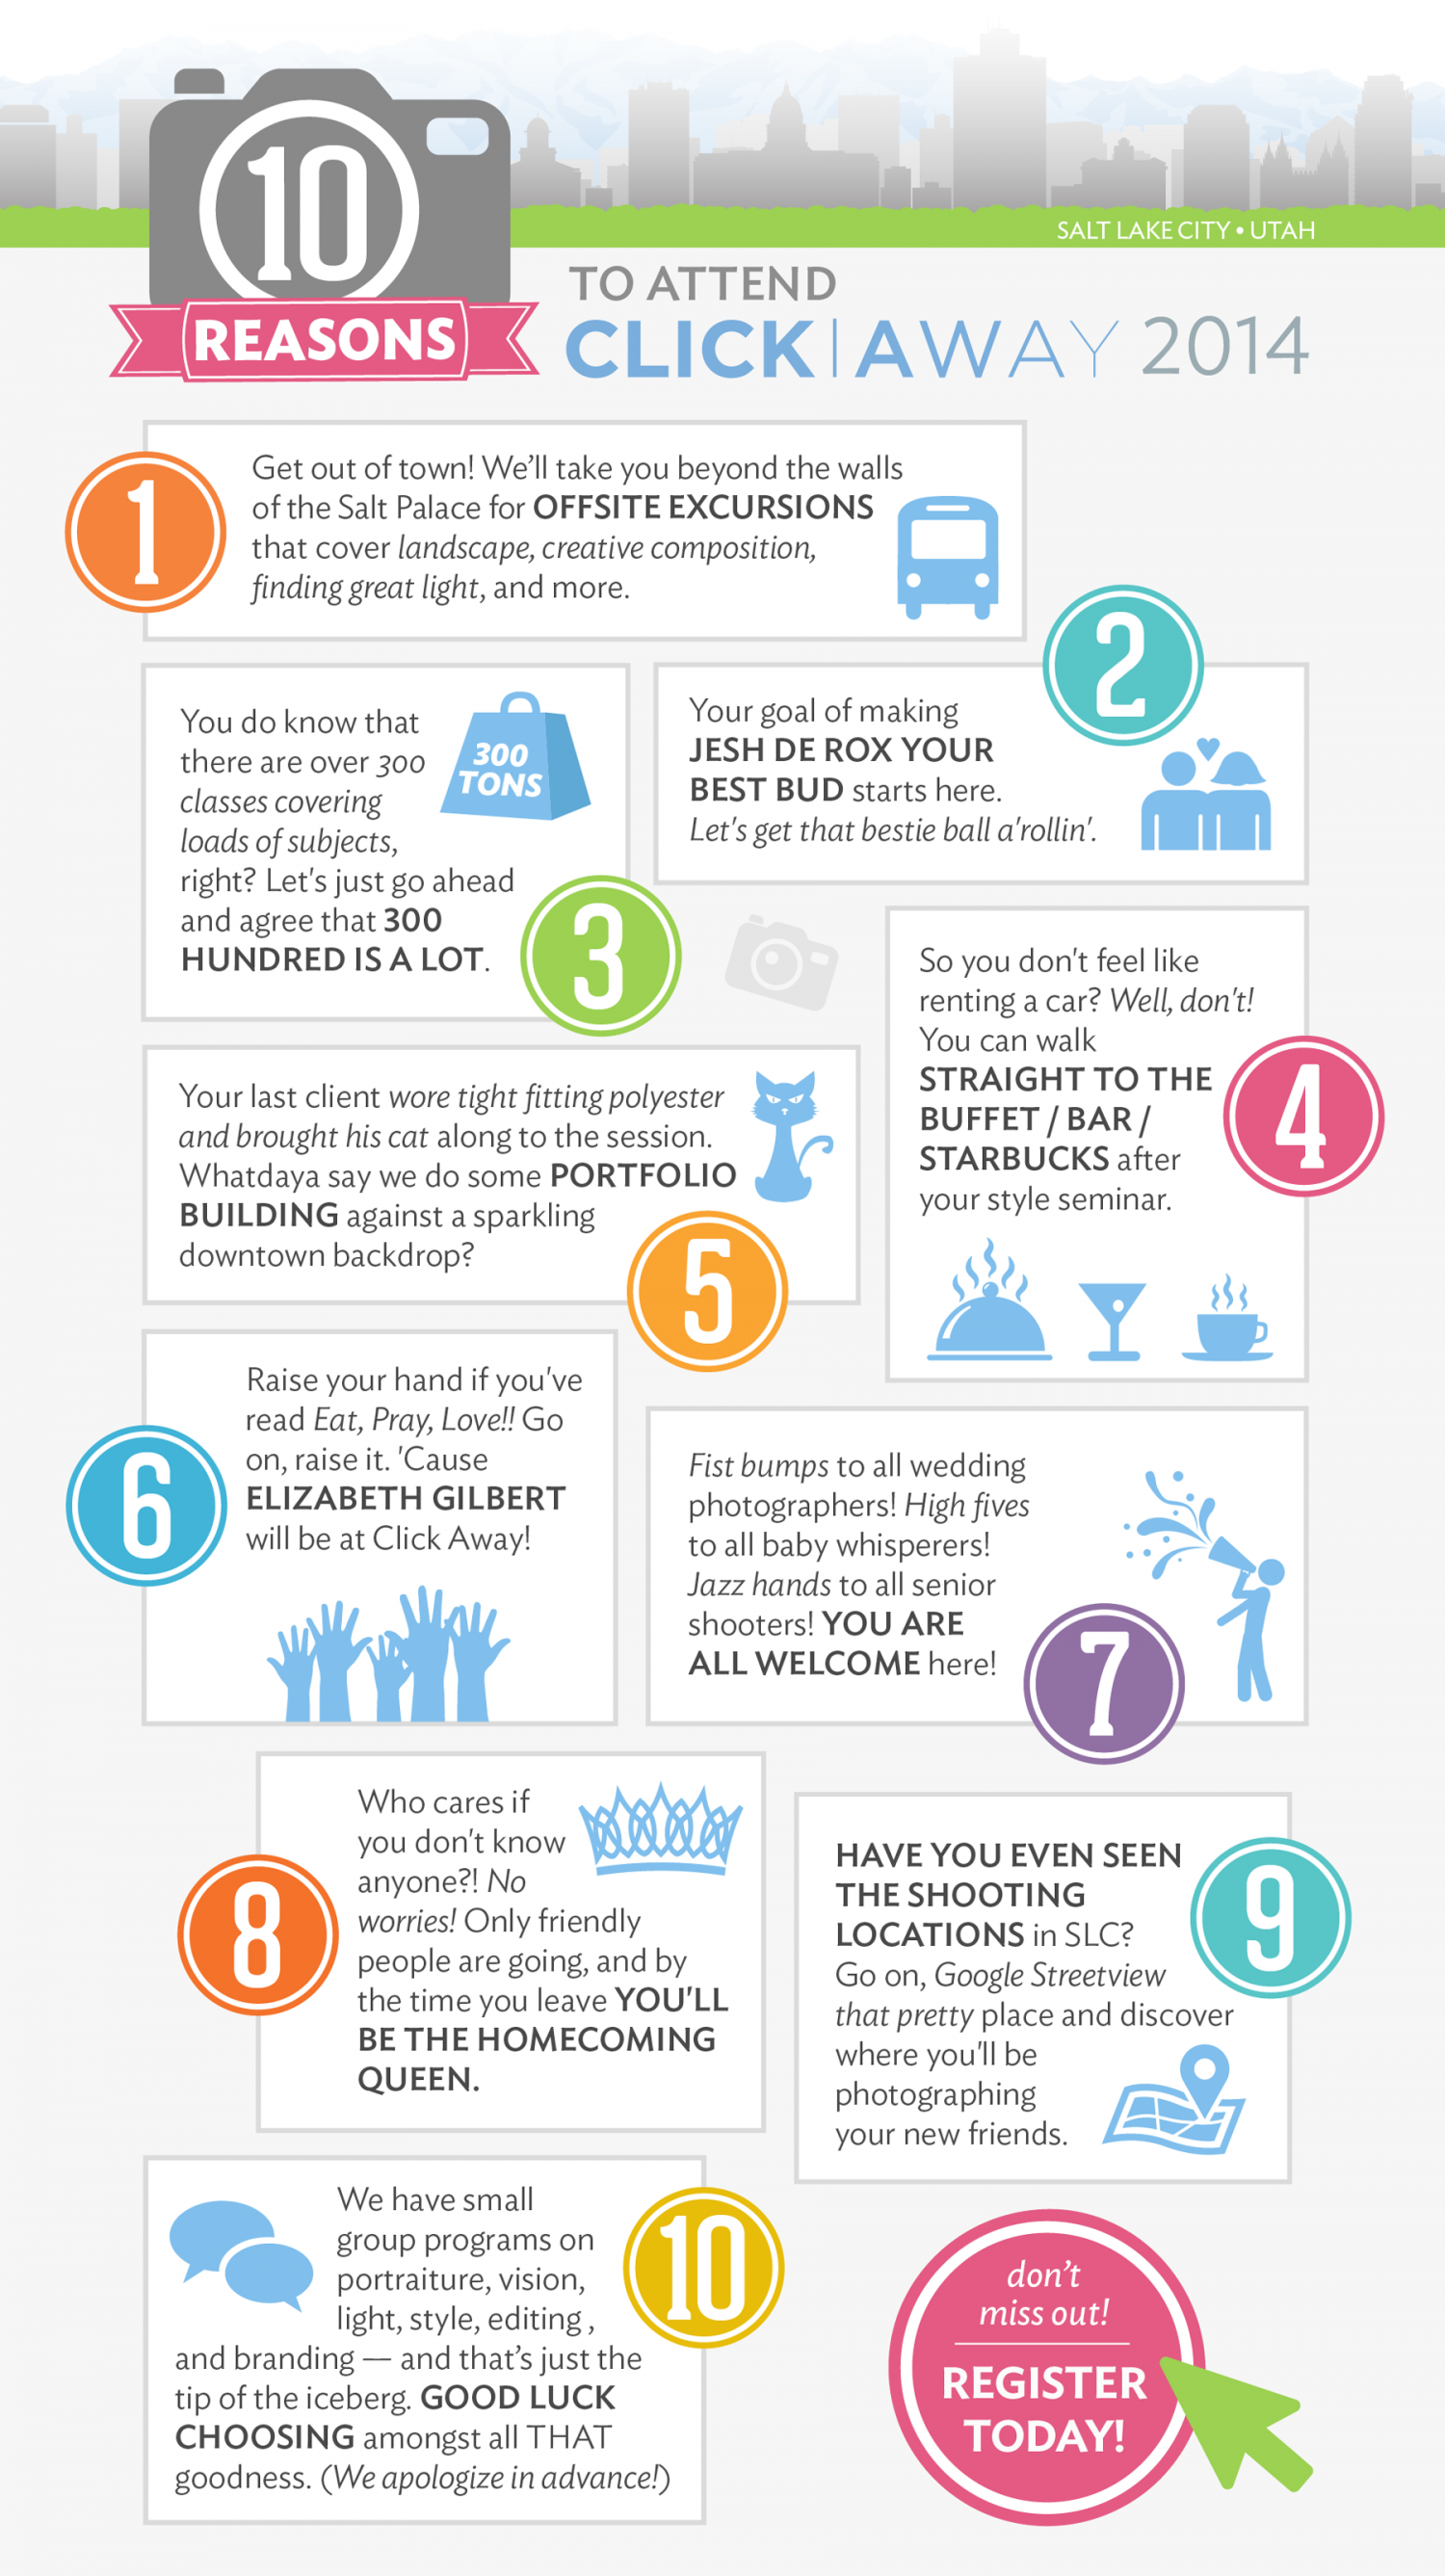 10 Reasons to Attend Click Away 2014 Infographic